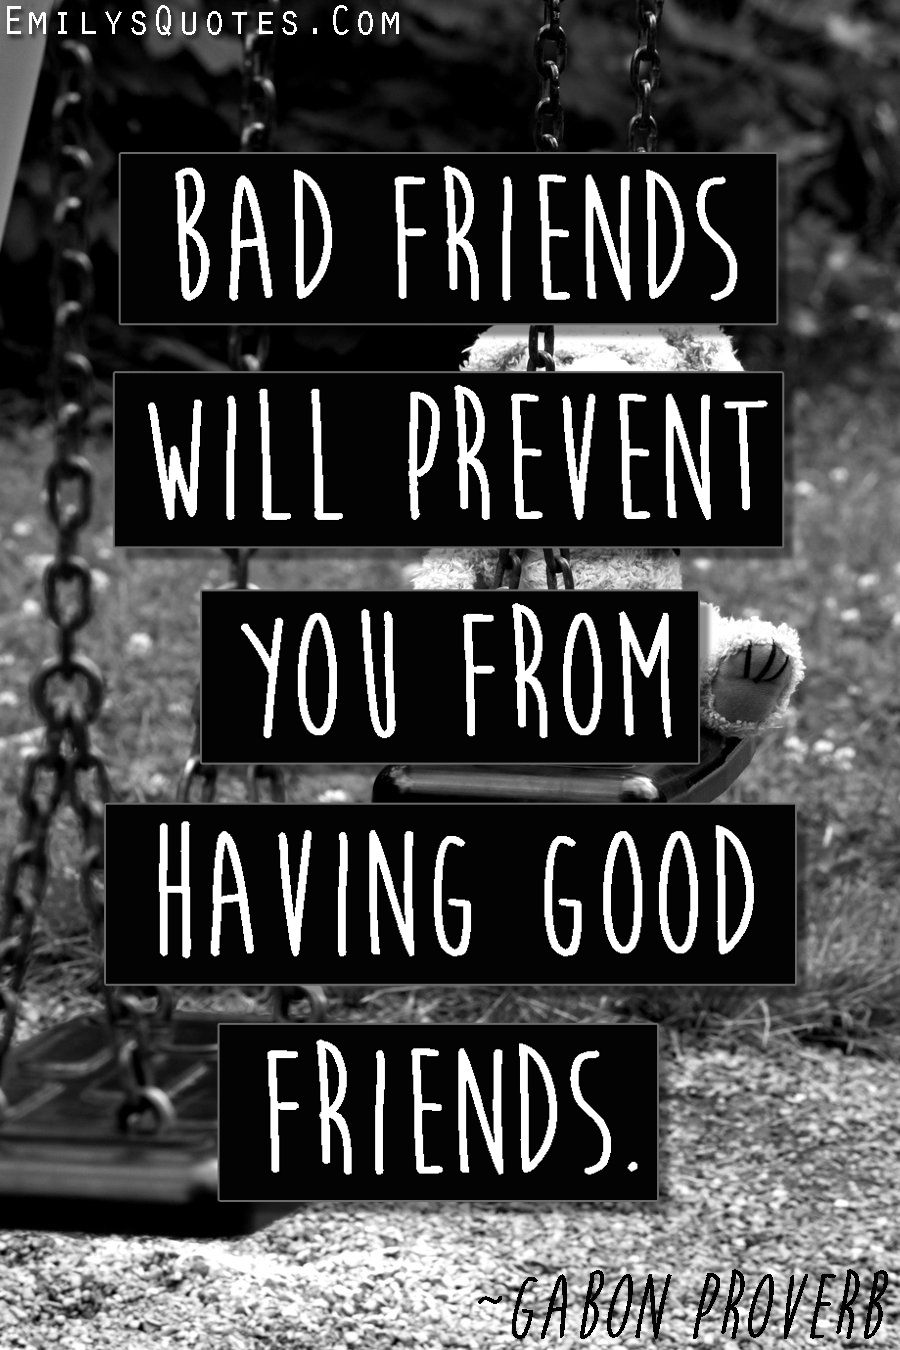 Bad Friends Will Prevent You From Having Good Friends Sure Will That Goes For Relationships And Significant Other Bad Friends Bad Friendship Wise Words Quotes